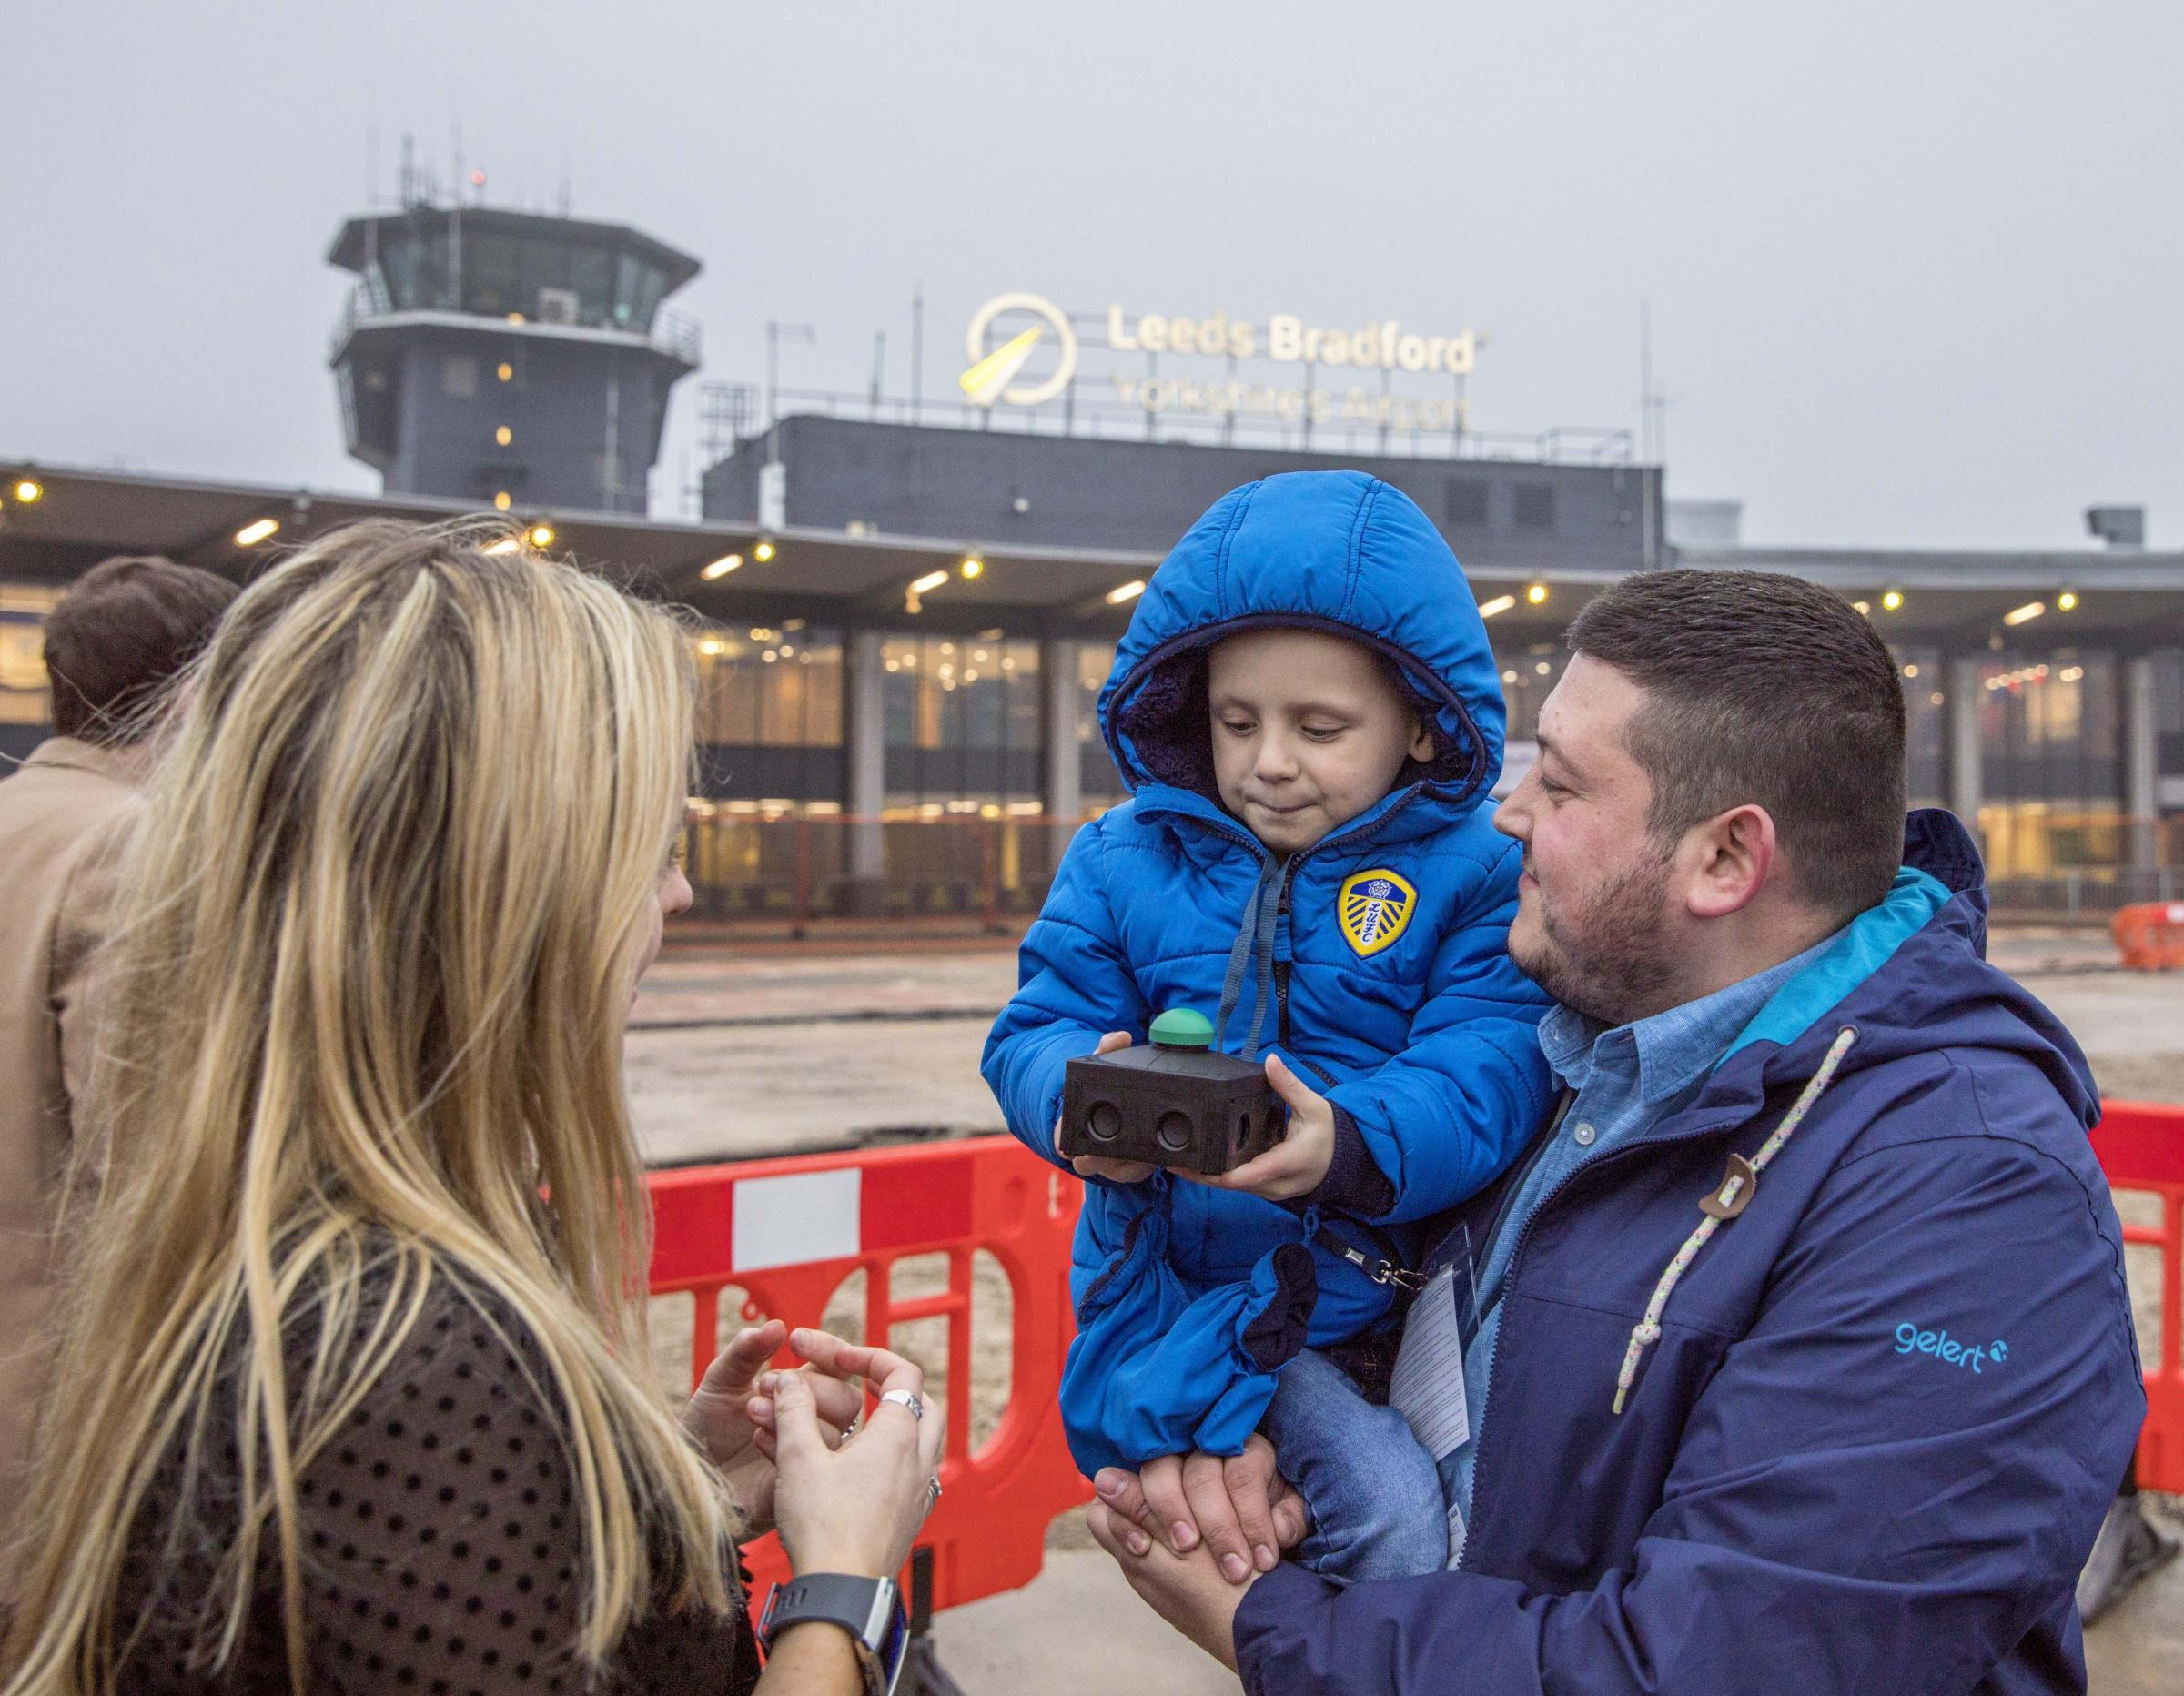 Toby Nye with his Dad Simon, unveils Leeds Bradford Airport's updated brand, Yorkshire's Airport.